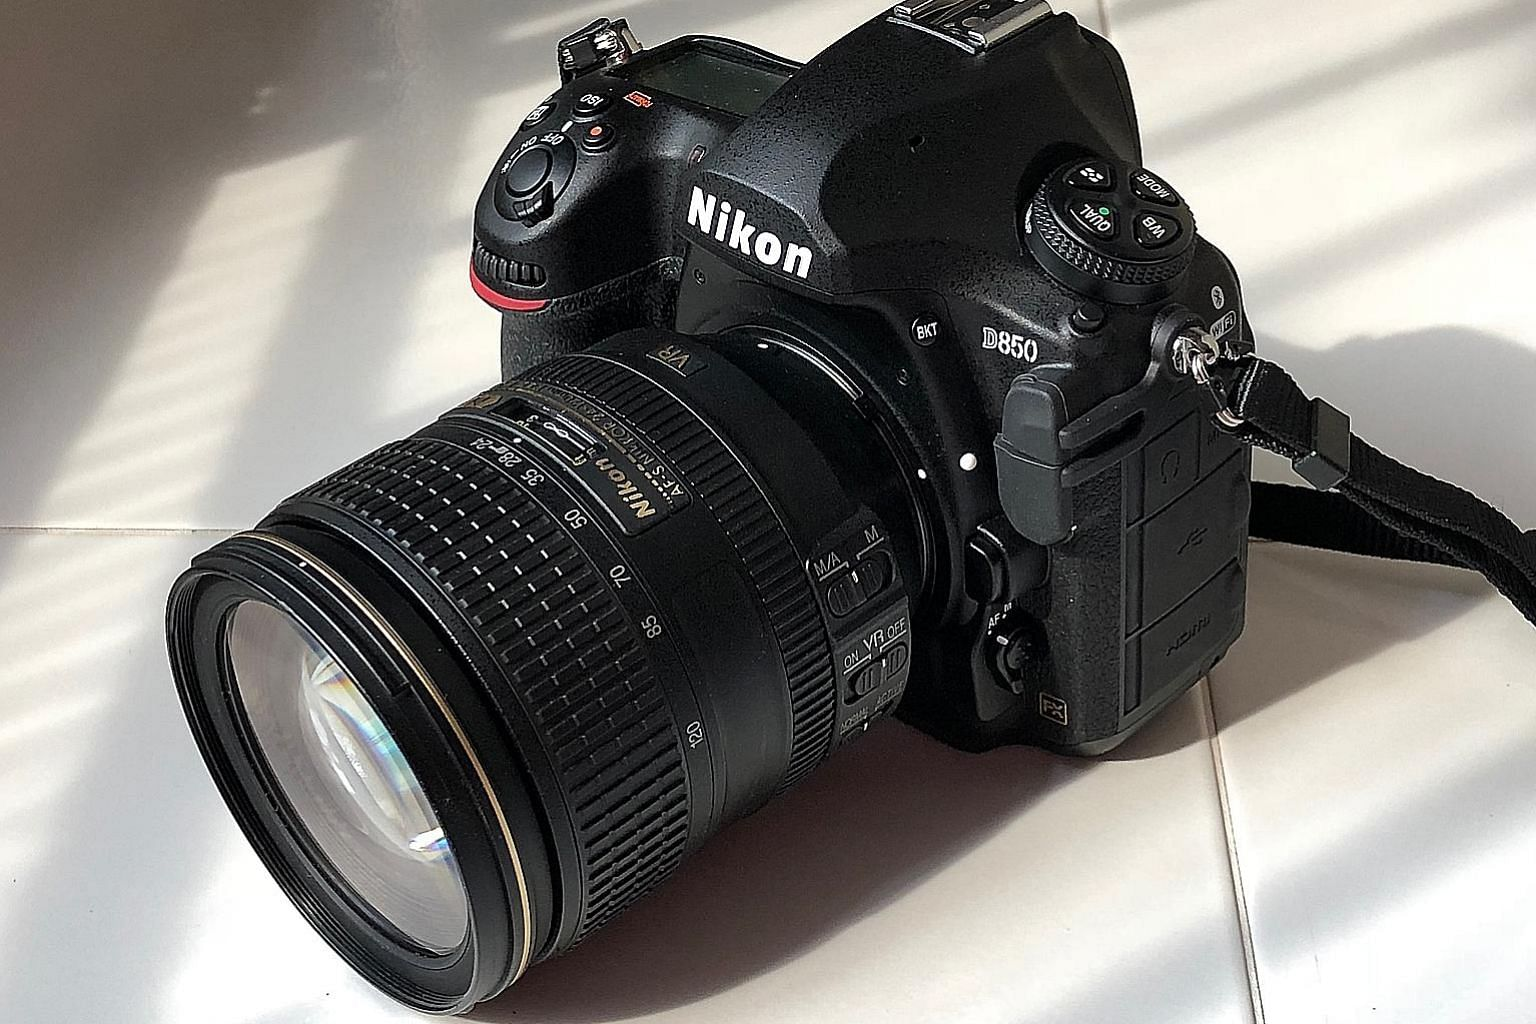 With its weather-sealed magnesium alloy body that is resistant to dust and moisture, the Nikon D850 feels solid and robust. The ergonomic grip provides you with a great grasp of the camera.